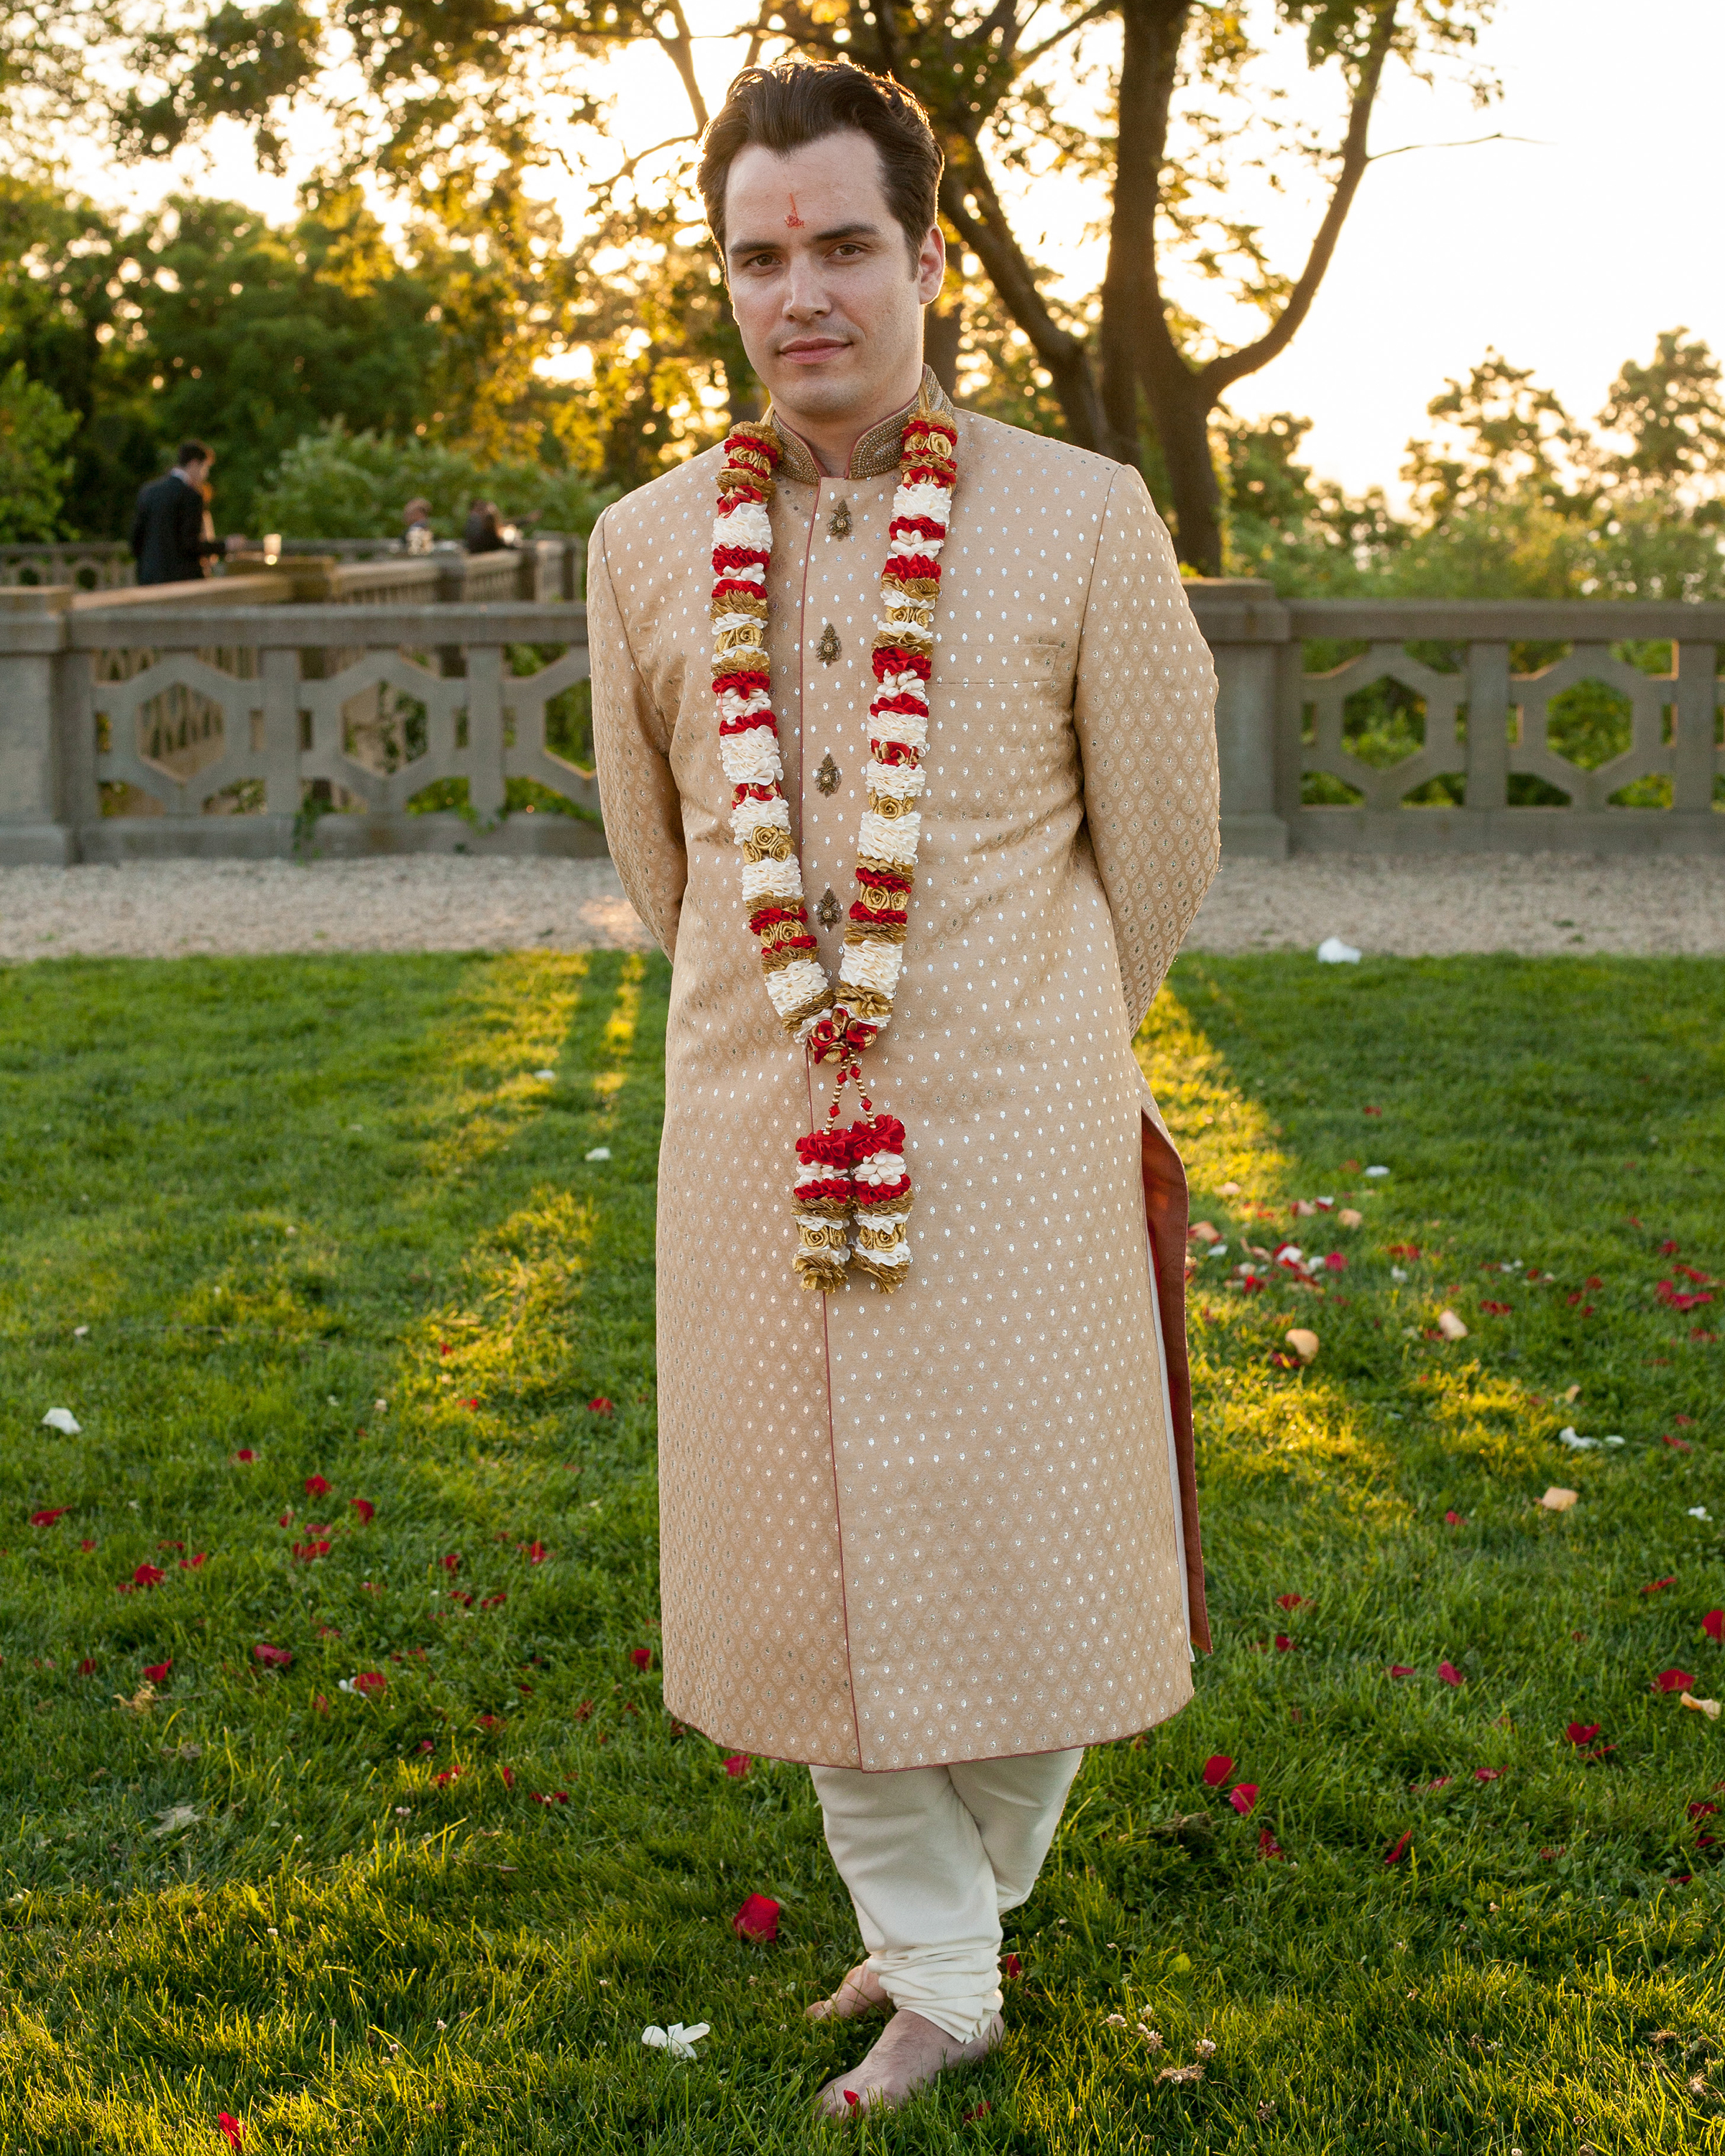 The Groom's Garb